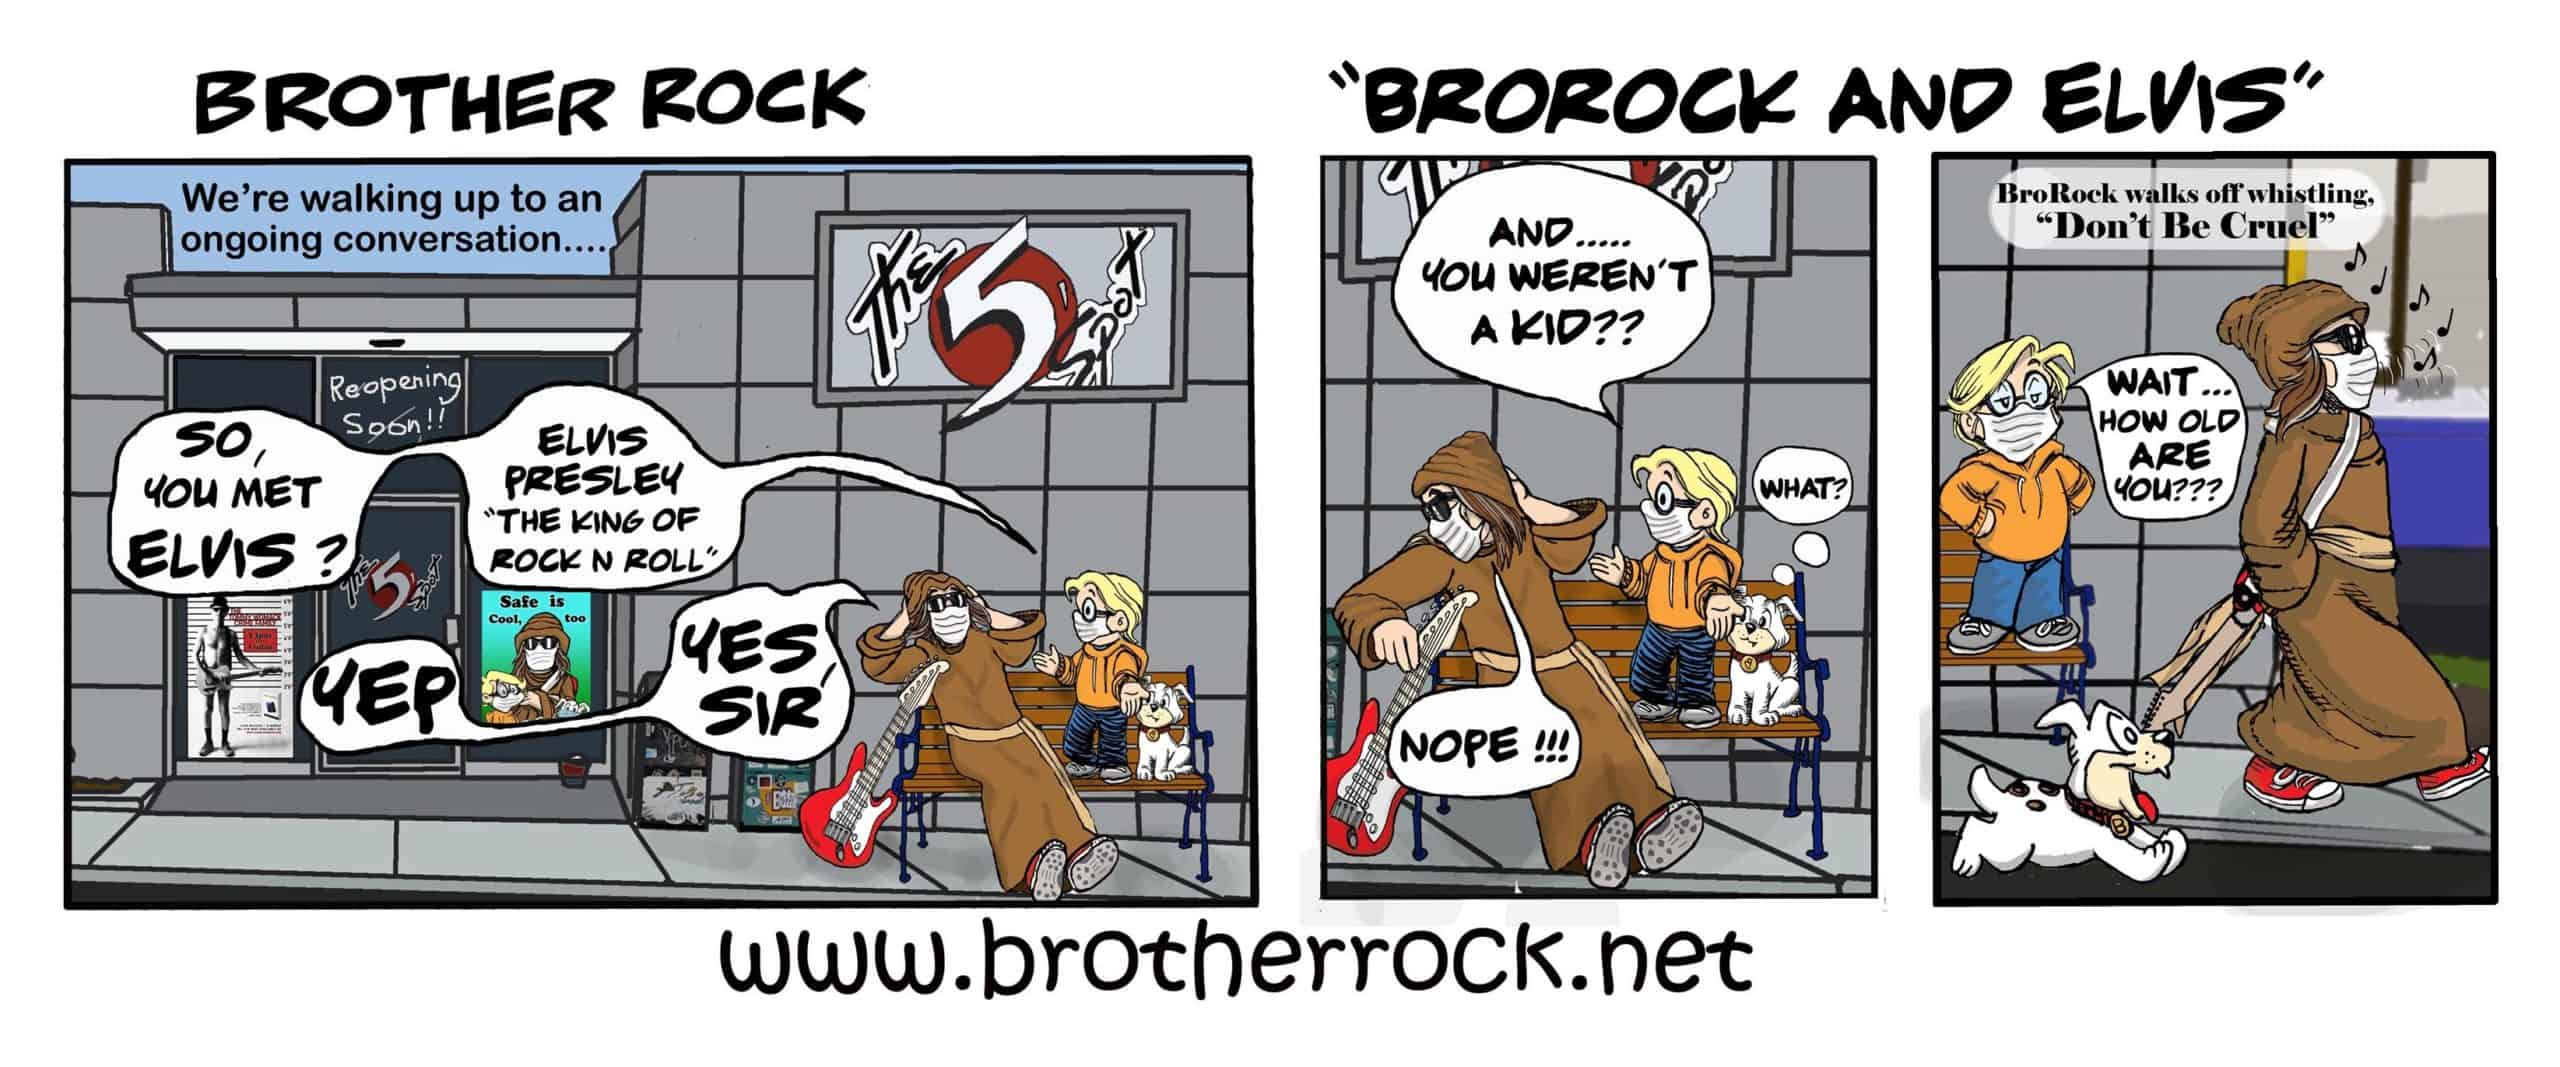 Brother Rock music cartoon: Elvis - Brother Rock knew Elvis, the King